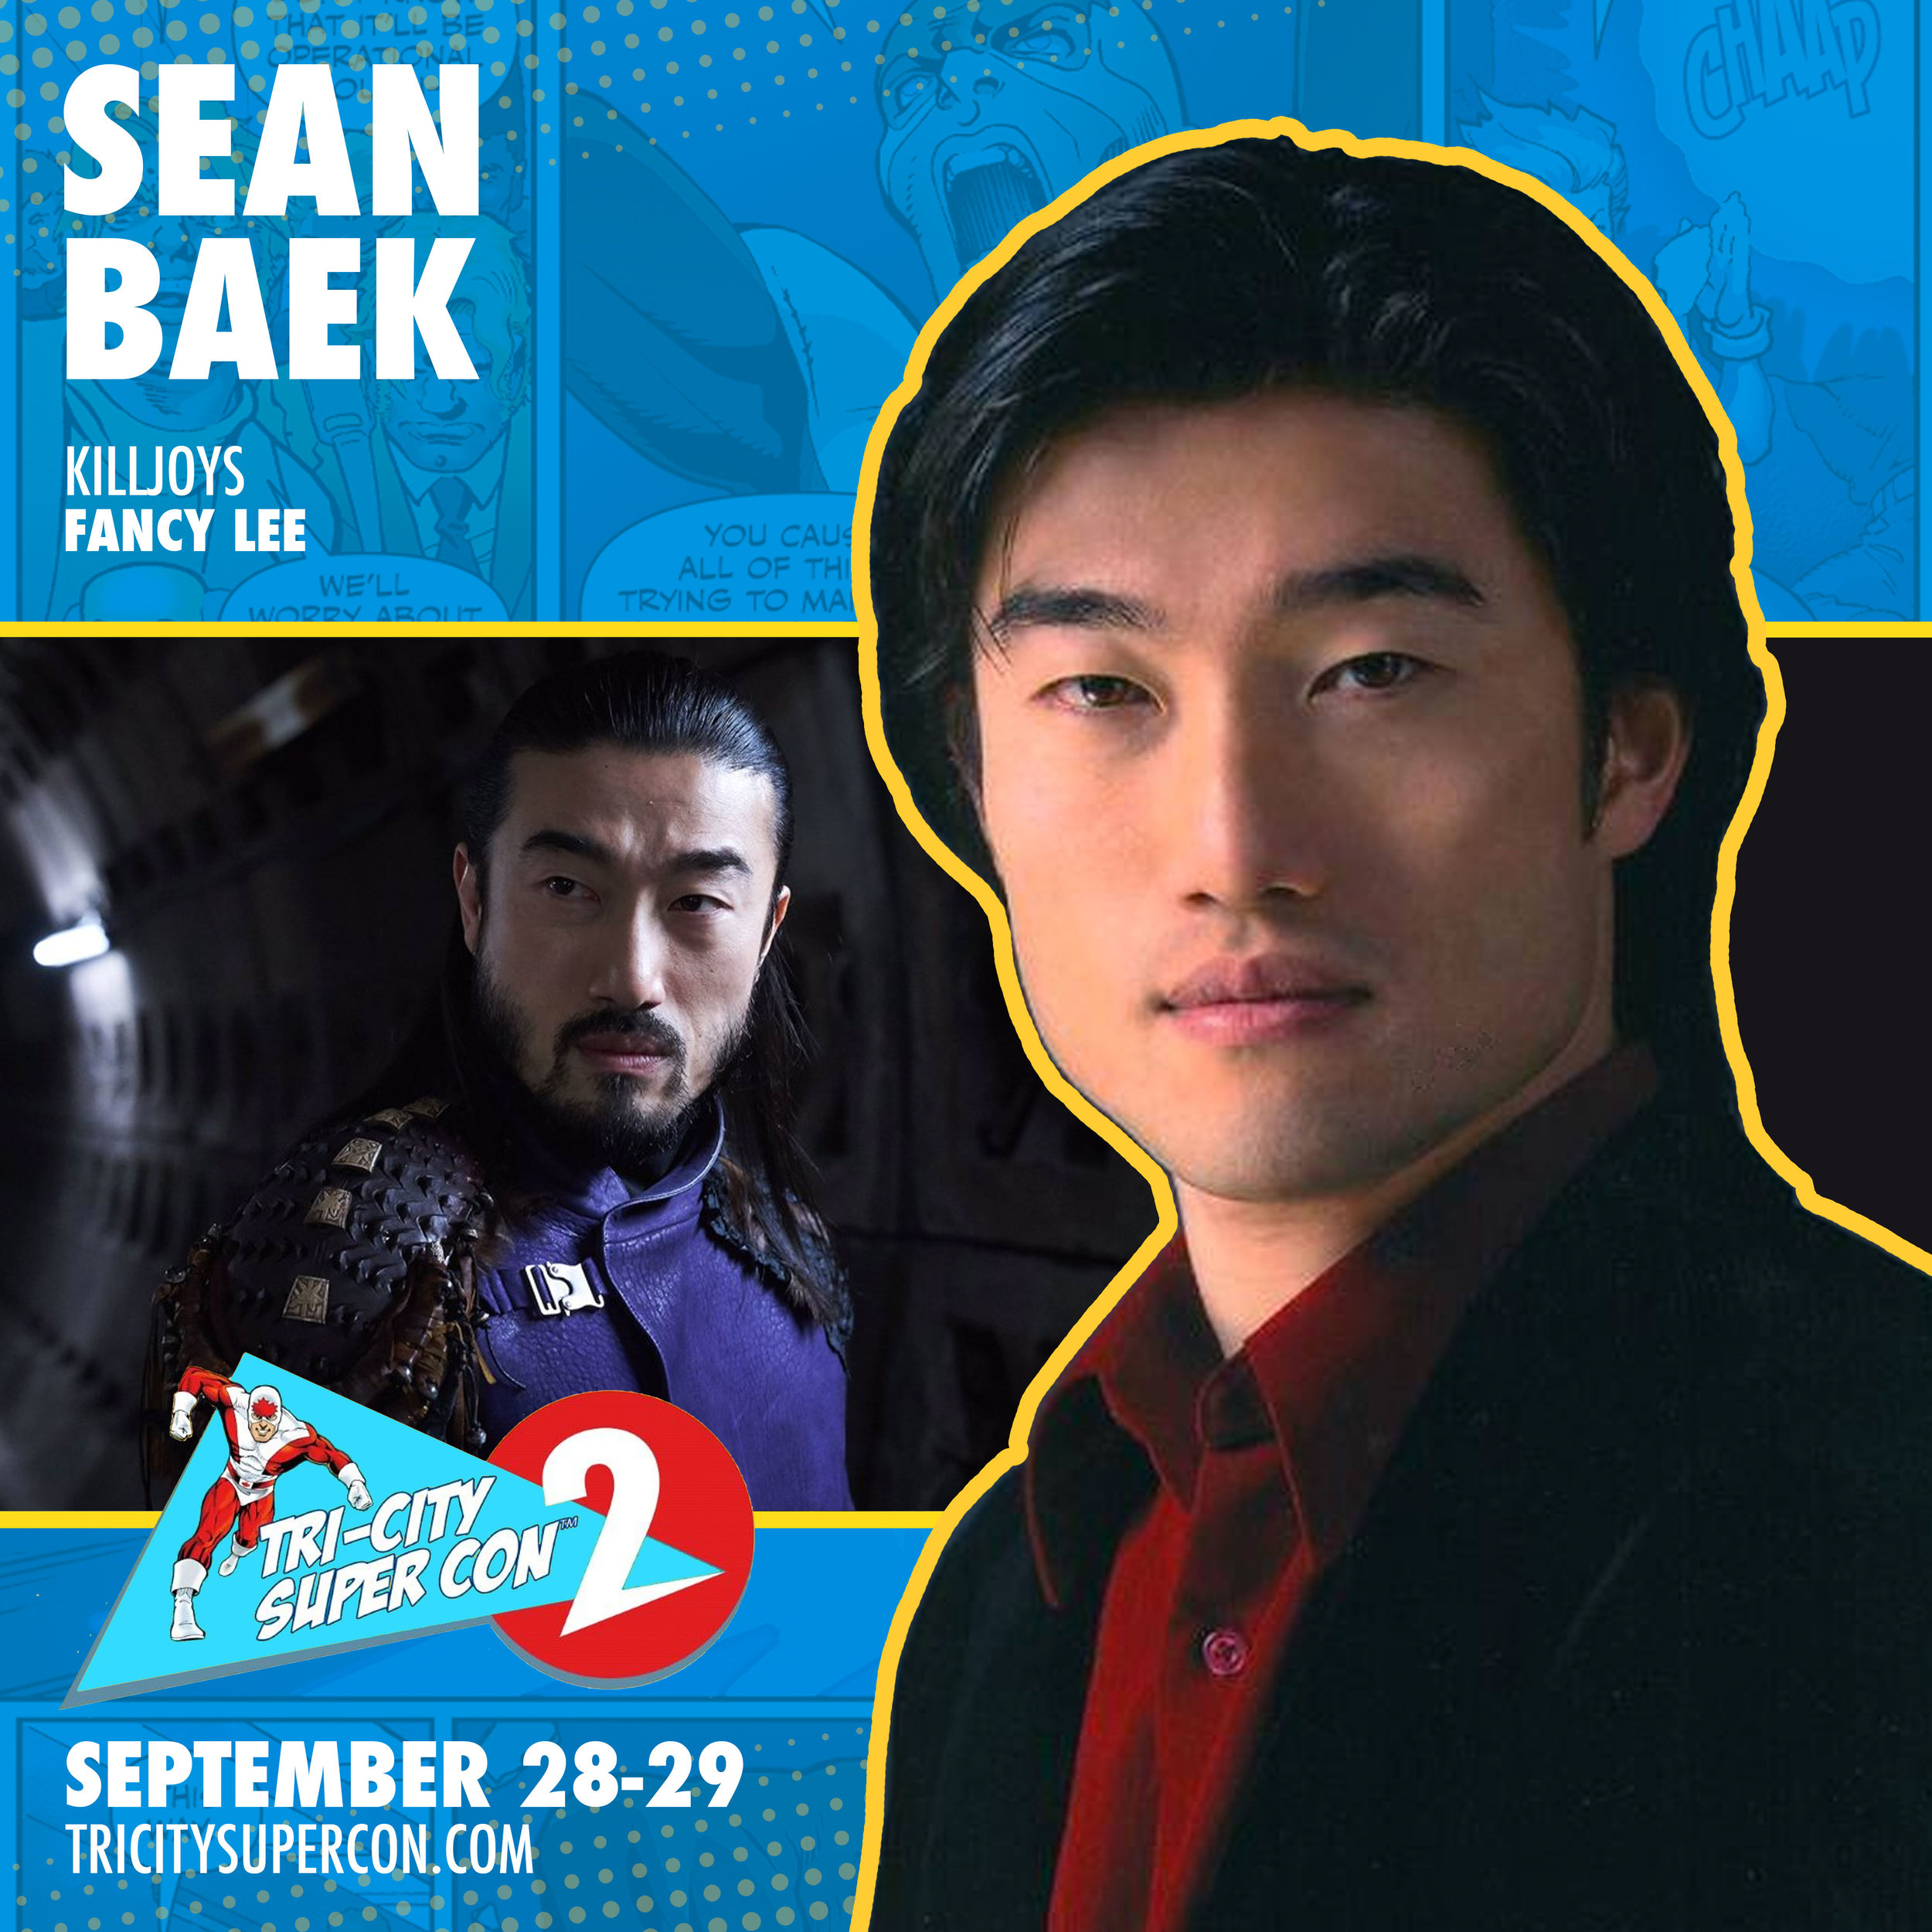 Sean Baek   started his acting career in theatre in Toronto, Ontario, Canada, after graduating from York University's Theatre program with an Honours degree. While continuing to develop as an actor and building a body of work in Theatre, Film, TV, Commercials, and Voice, he was selected from a national search as a member of a prestigious professional development/training program for classical theatre - the Birmingham Conservatory at the Stratford Festival of Canada in 2005. He spent three seasons at the Stratford Festival, appearing in numerous productions (Shakespeare and other classical works). Sean lent his voice to radio dramas for CBC (Canadian Broadcasting Corporation) and few video games.Plays guitar and sings; appeared as a Guest Singer/Song-writer on Rogers' TV Talk Show, DayTime. Has practiced Kuk Sool Won Hapkido, a Korean martial-art system, since he was 16 years old.